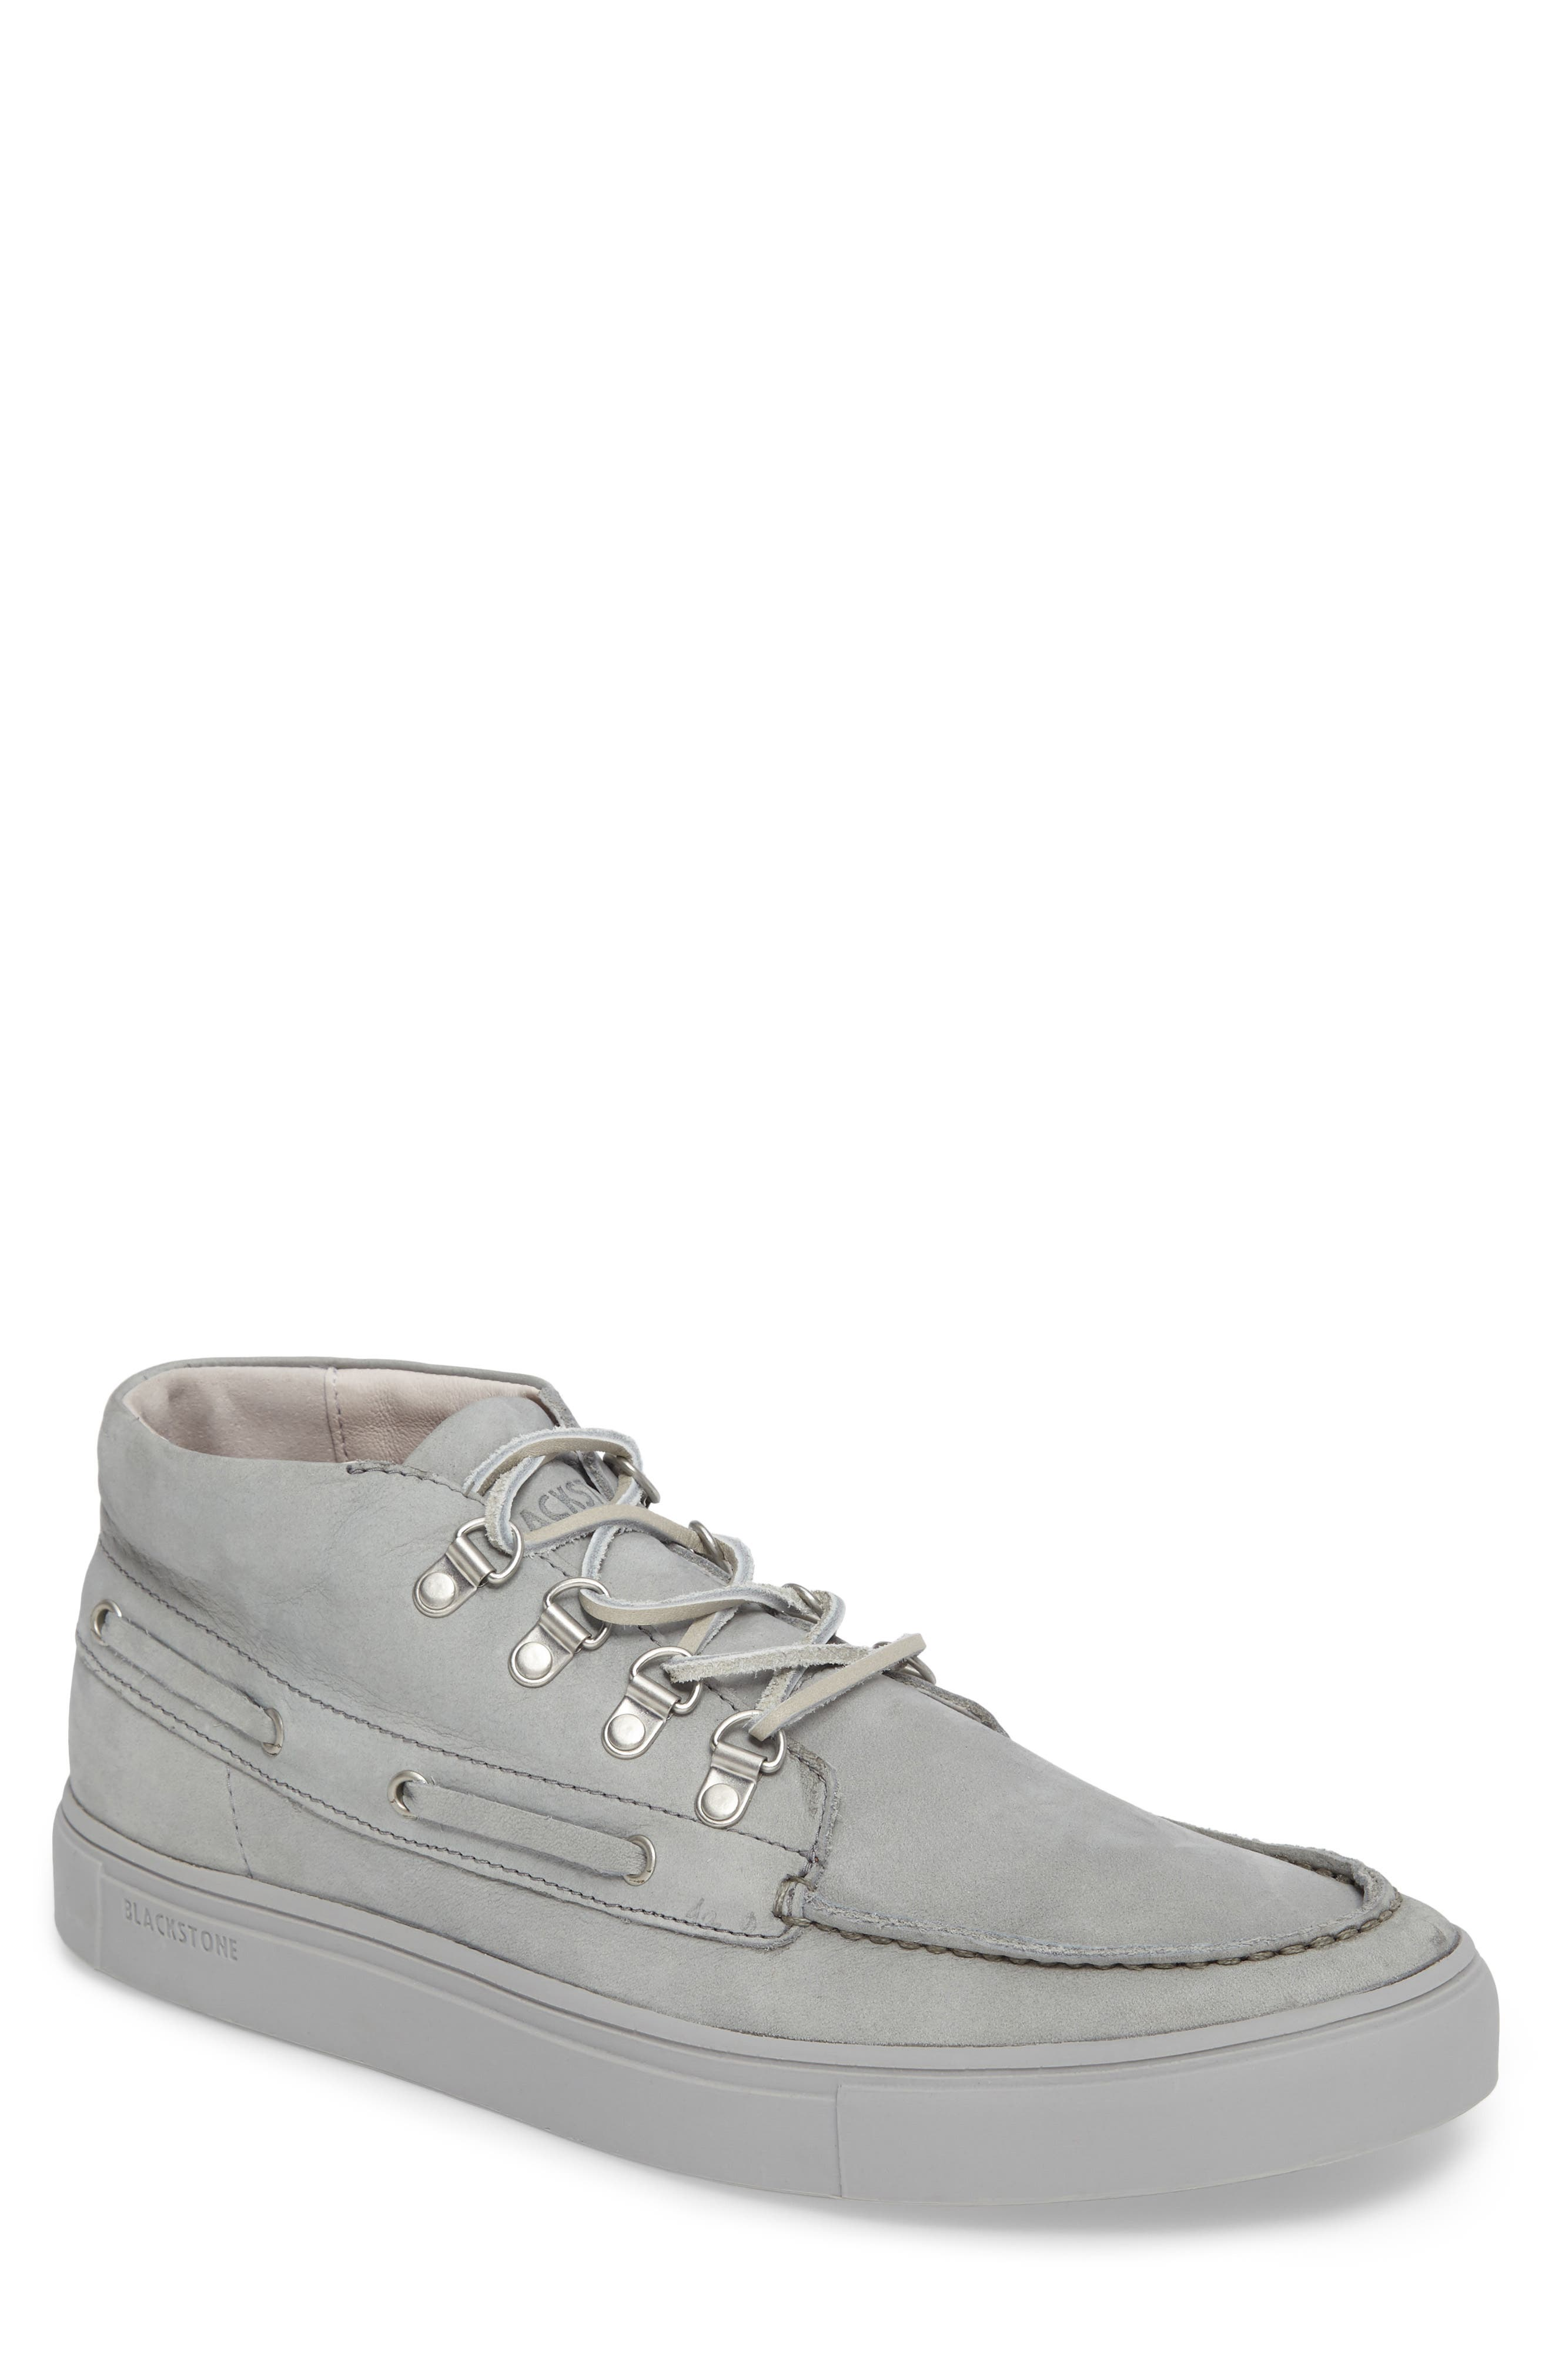 NM09 Mid Top Boat Sneaker,                         Main,                         color, 056